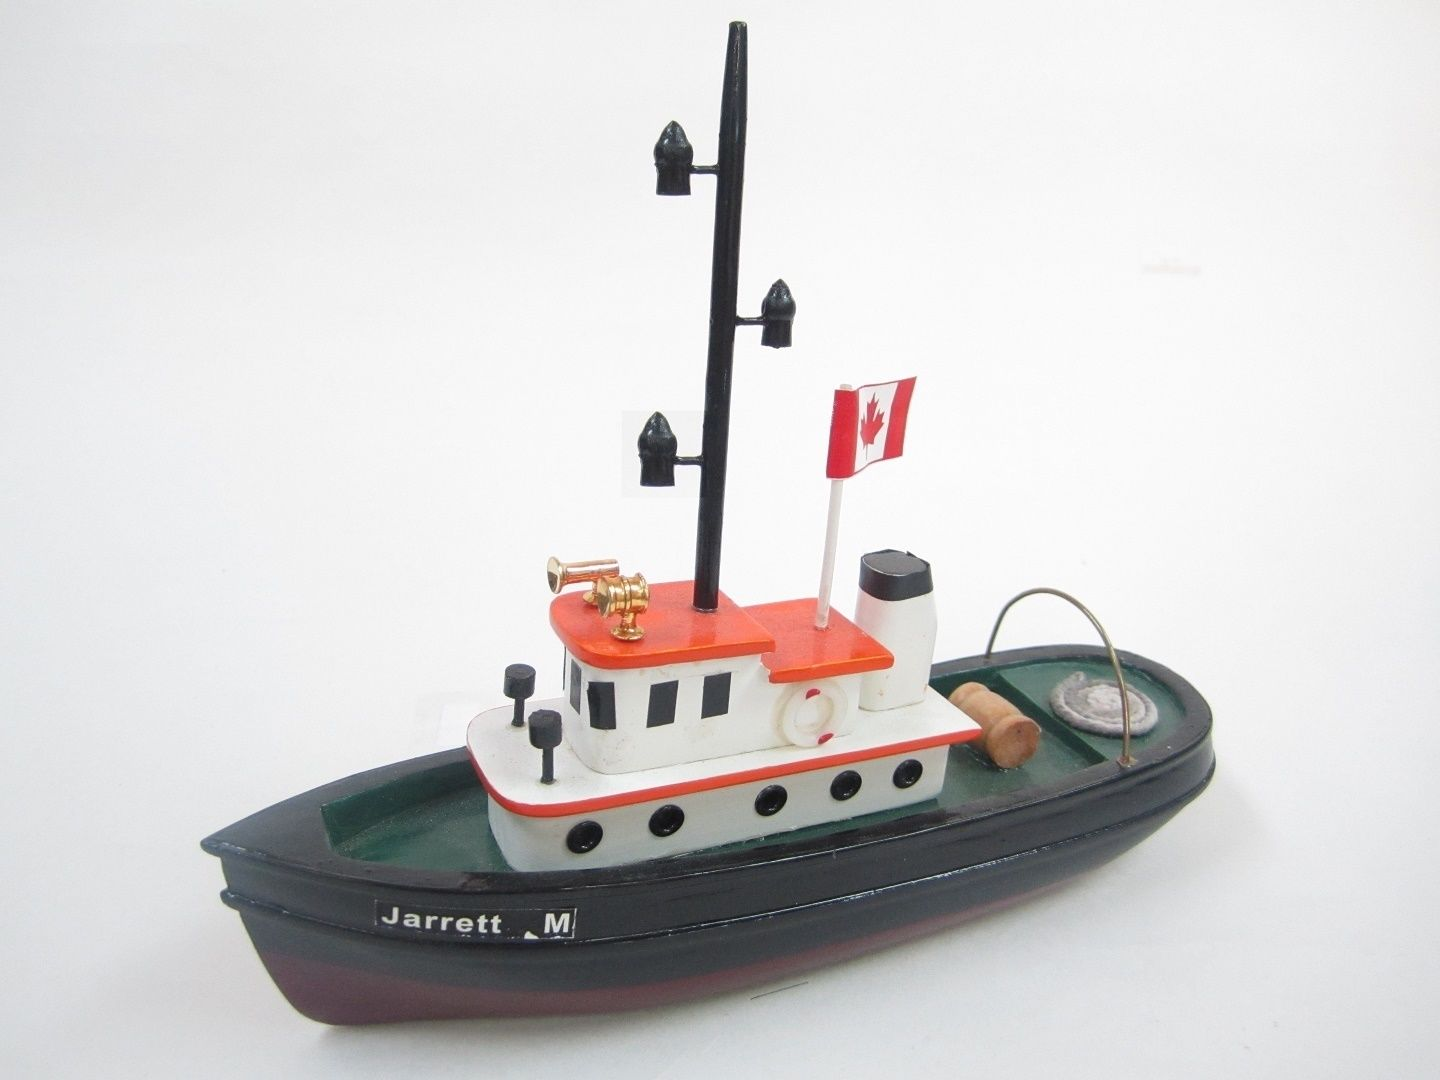 Jarrett M Starter Boat Kit: Build Your Own Ice-breaker Wooden Model Ship